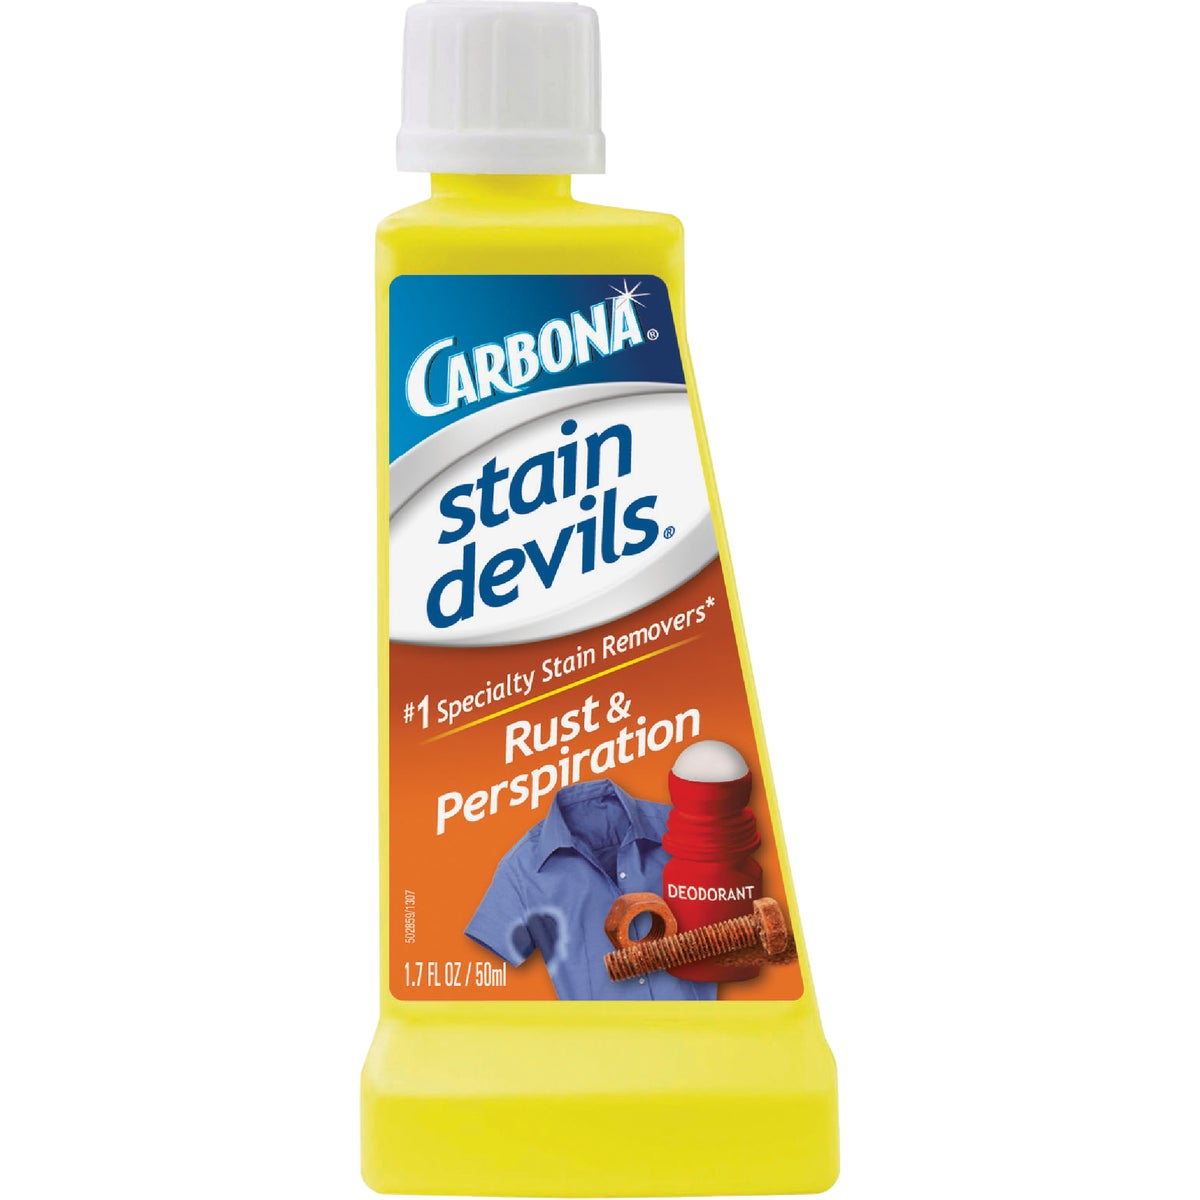 Carbona Stain Devils Formula 9 Stain Remover, 403/24